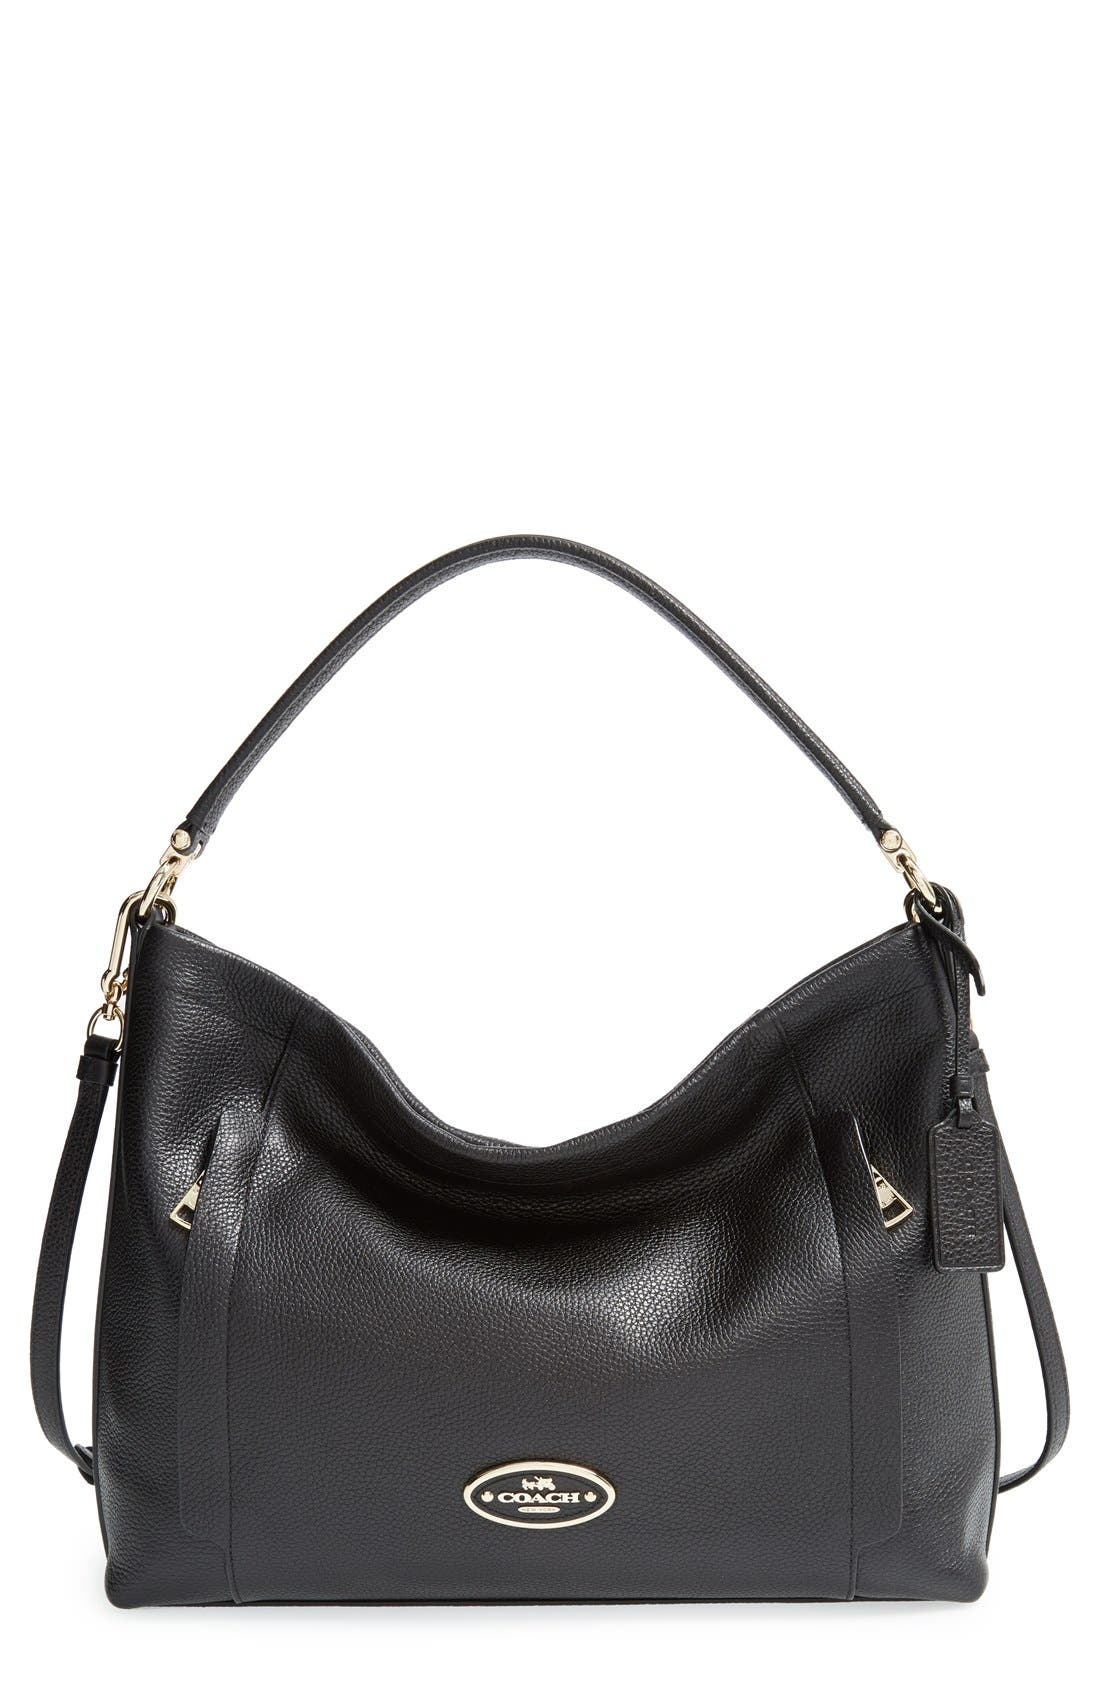 'Scout' Leather Hobo,                             Main thumbnail 1, color,                             001